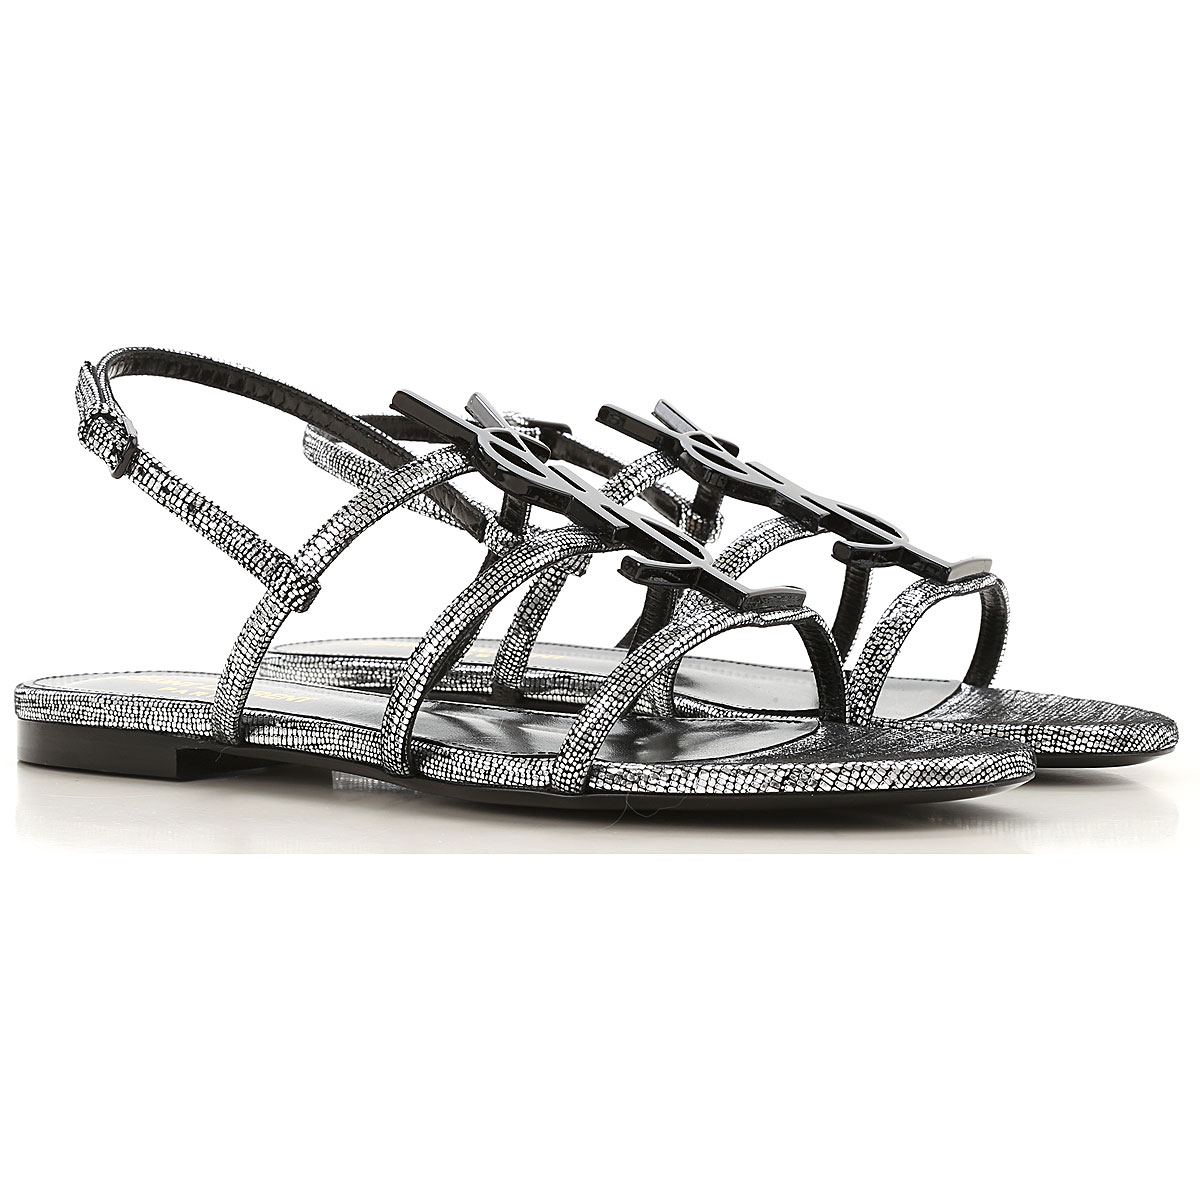 Yves Saint Laurent Flip Flops Flat Sandals Womens On Sale, Silver, Leather, 2019, 10 5 6 6.5 7 8 8.5